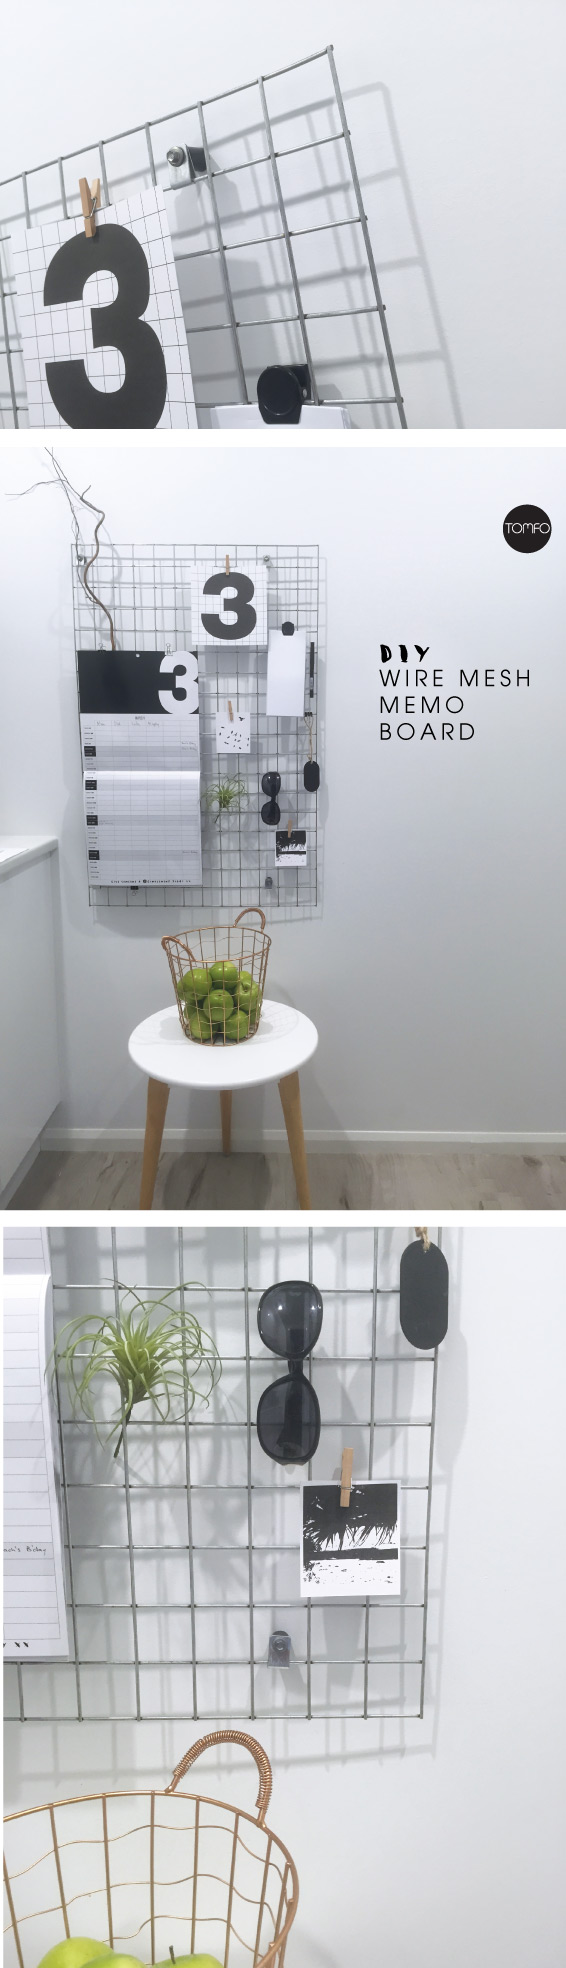 TOMFO-Diy-memo-wire-board